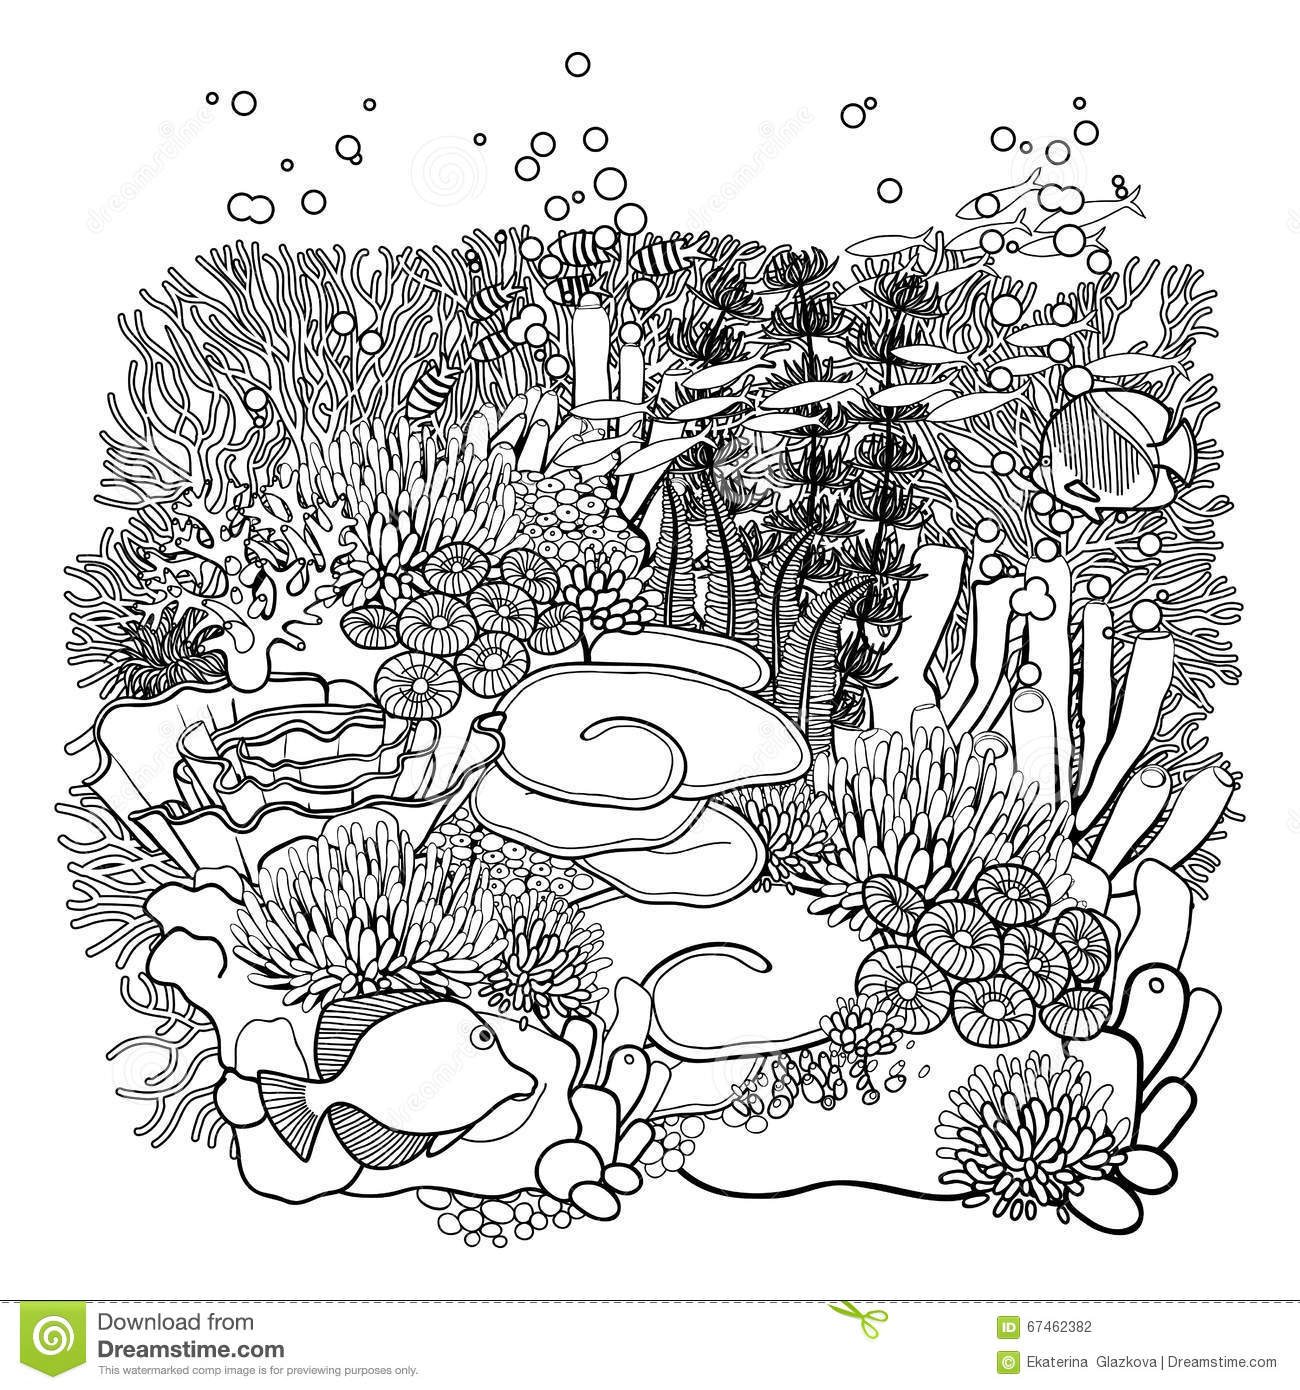 ocean plants coloring pages free - photo#25